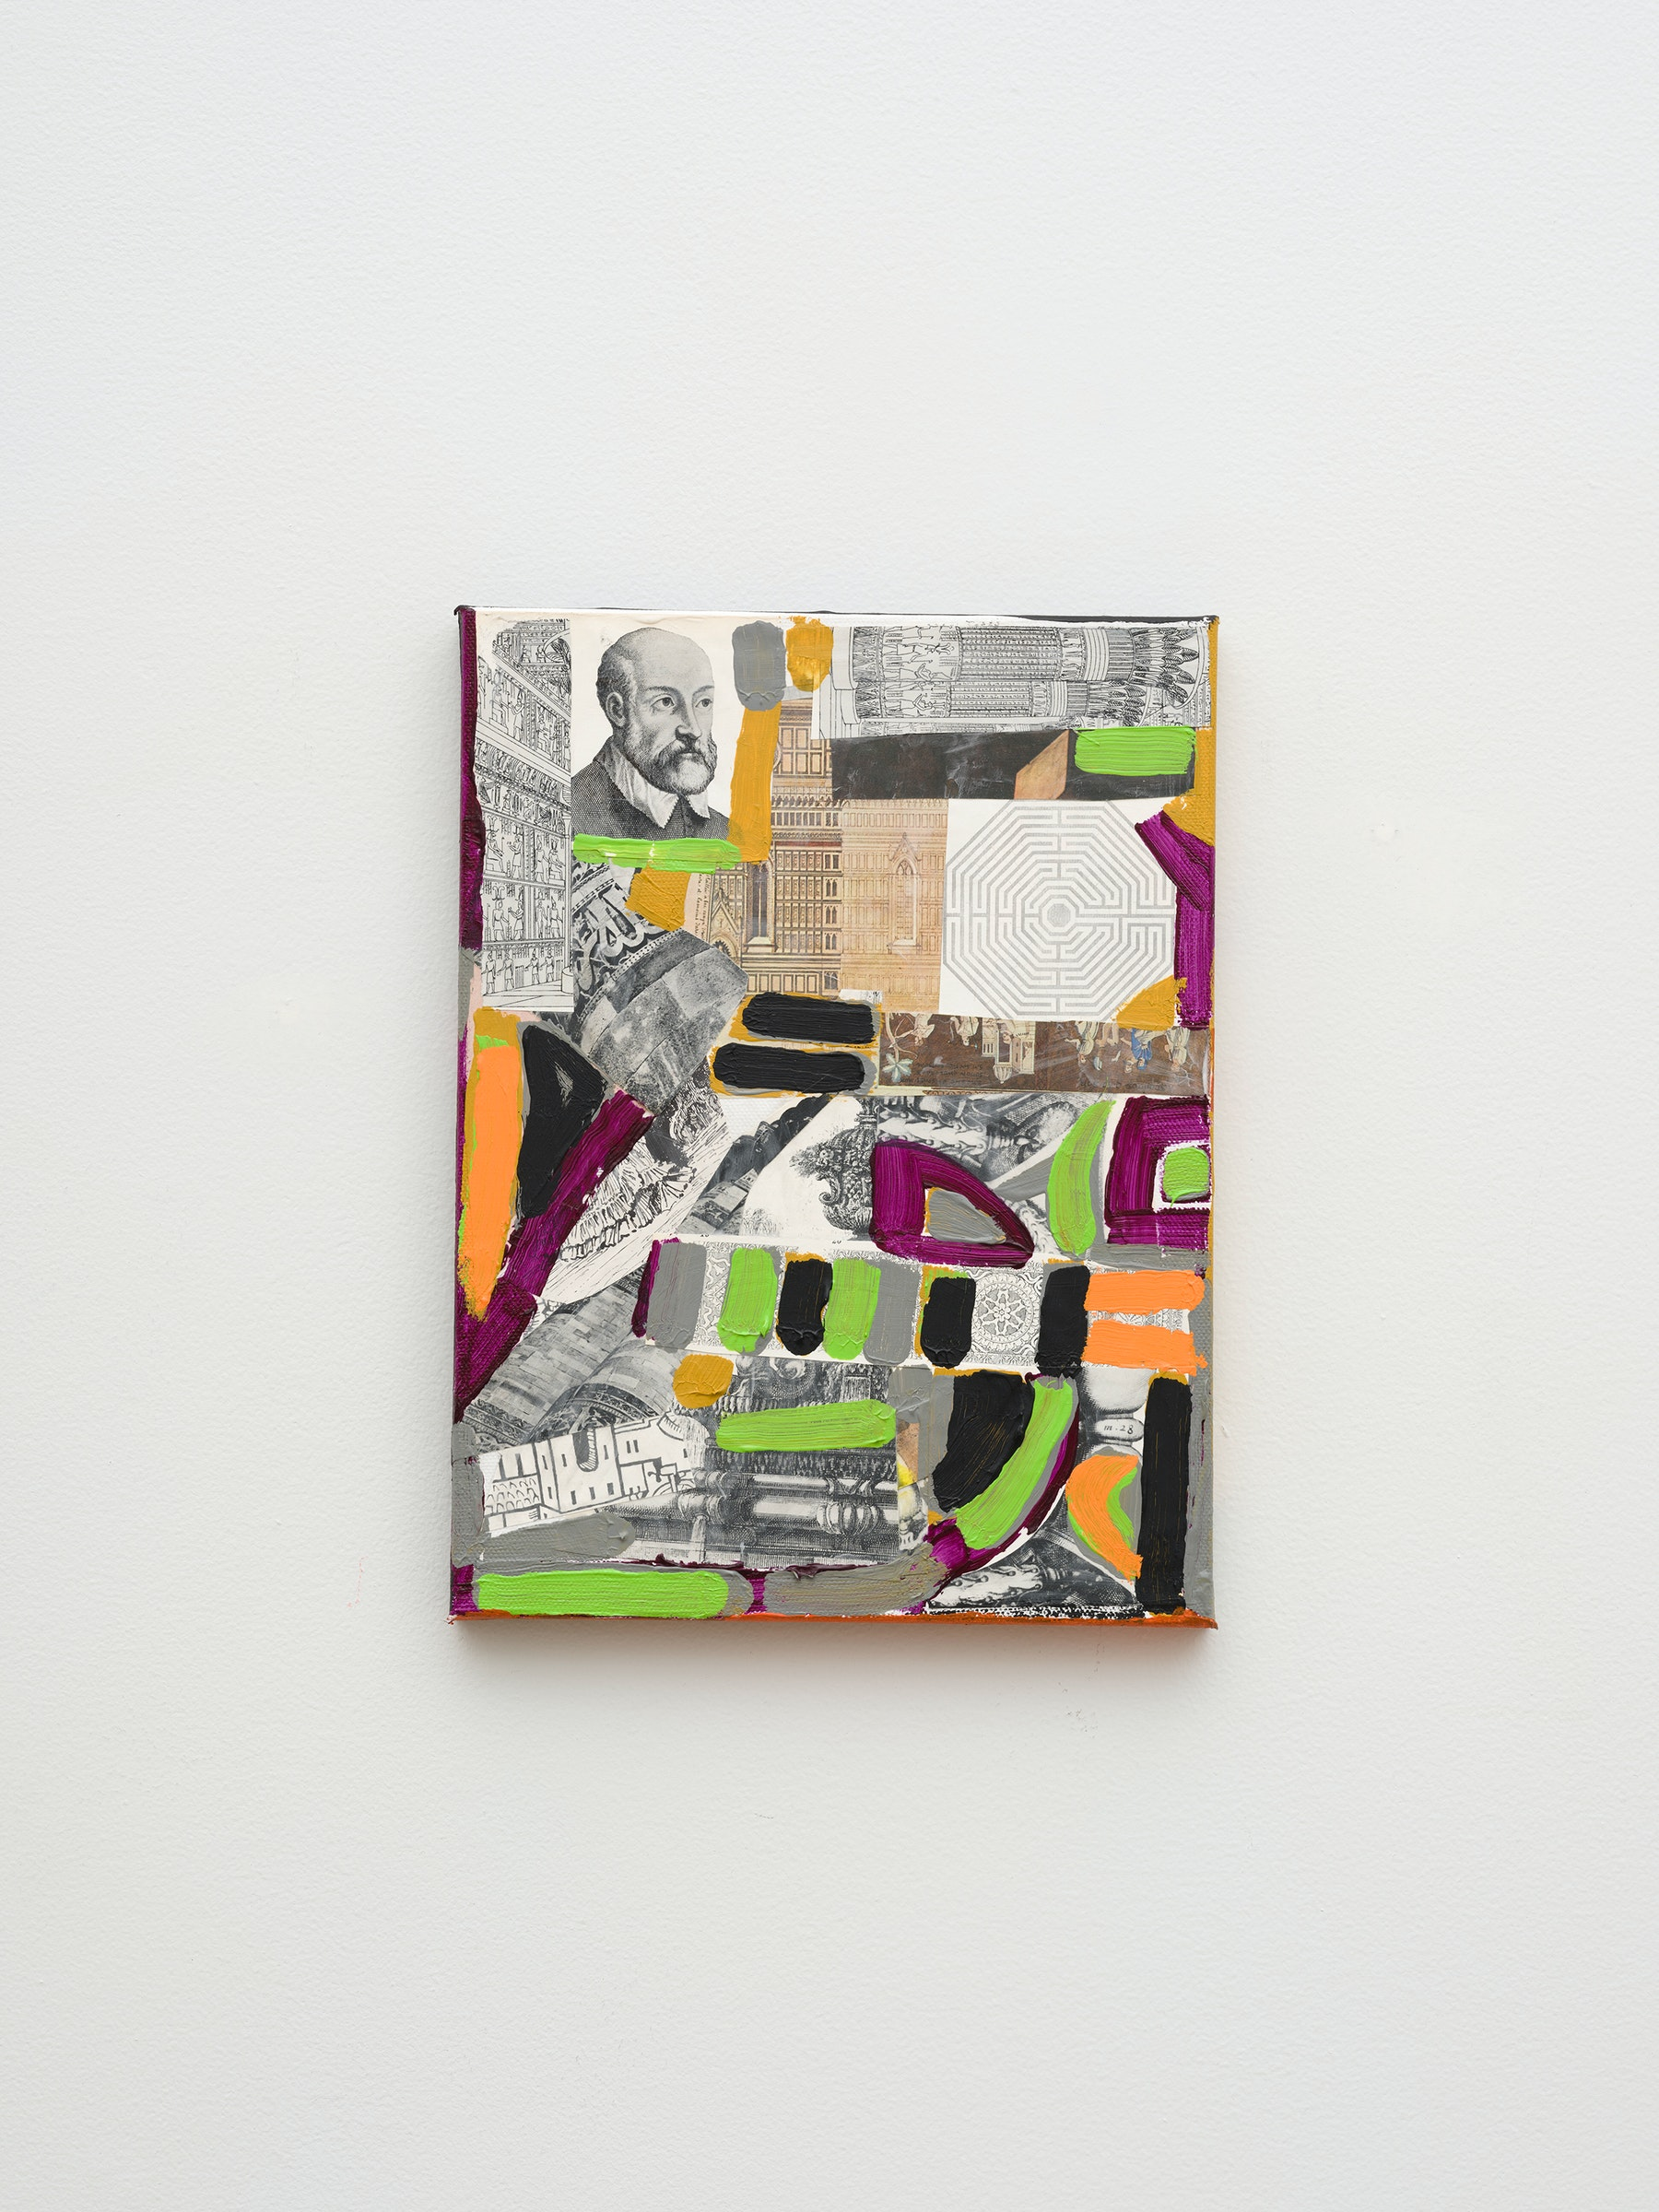 """Steve Roden """"broken,"""" 2020 Mixed media on canvas 12"""" x 9"""" x 1"""" [HxWxD] (30.48 x 22.86 x 2.54 cm) Inventory #ROD699 Courtesy of the artist and Vielmetter Los Angeles Photo credit: Jeff McLane Signed and dated on the back"""